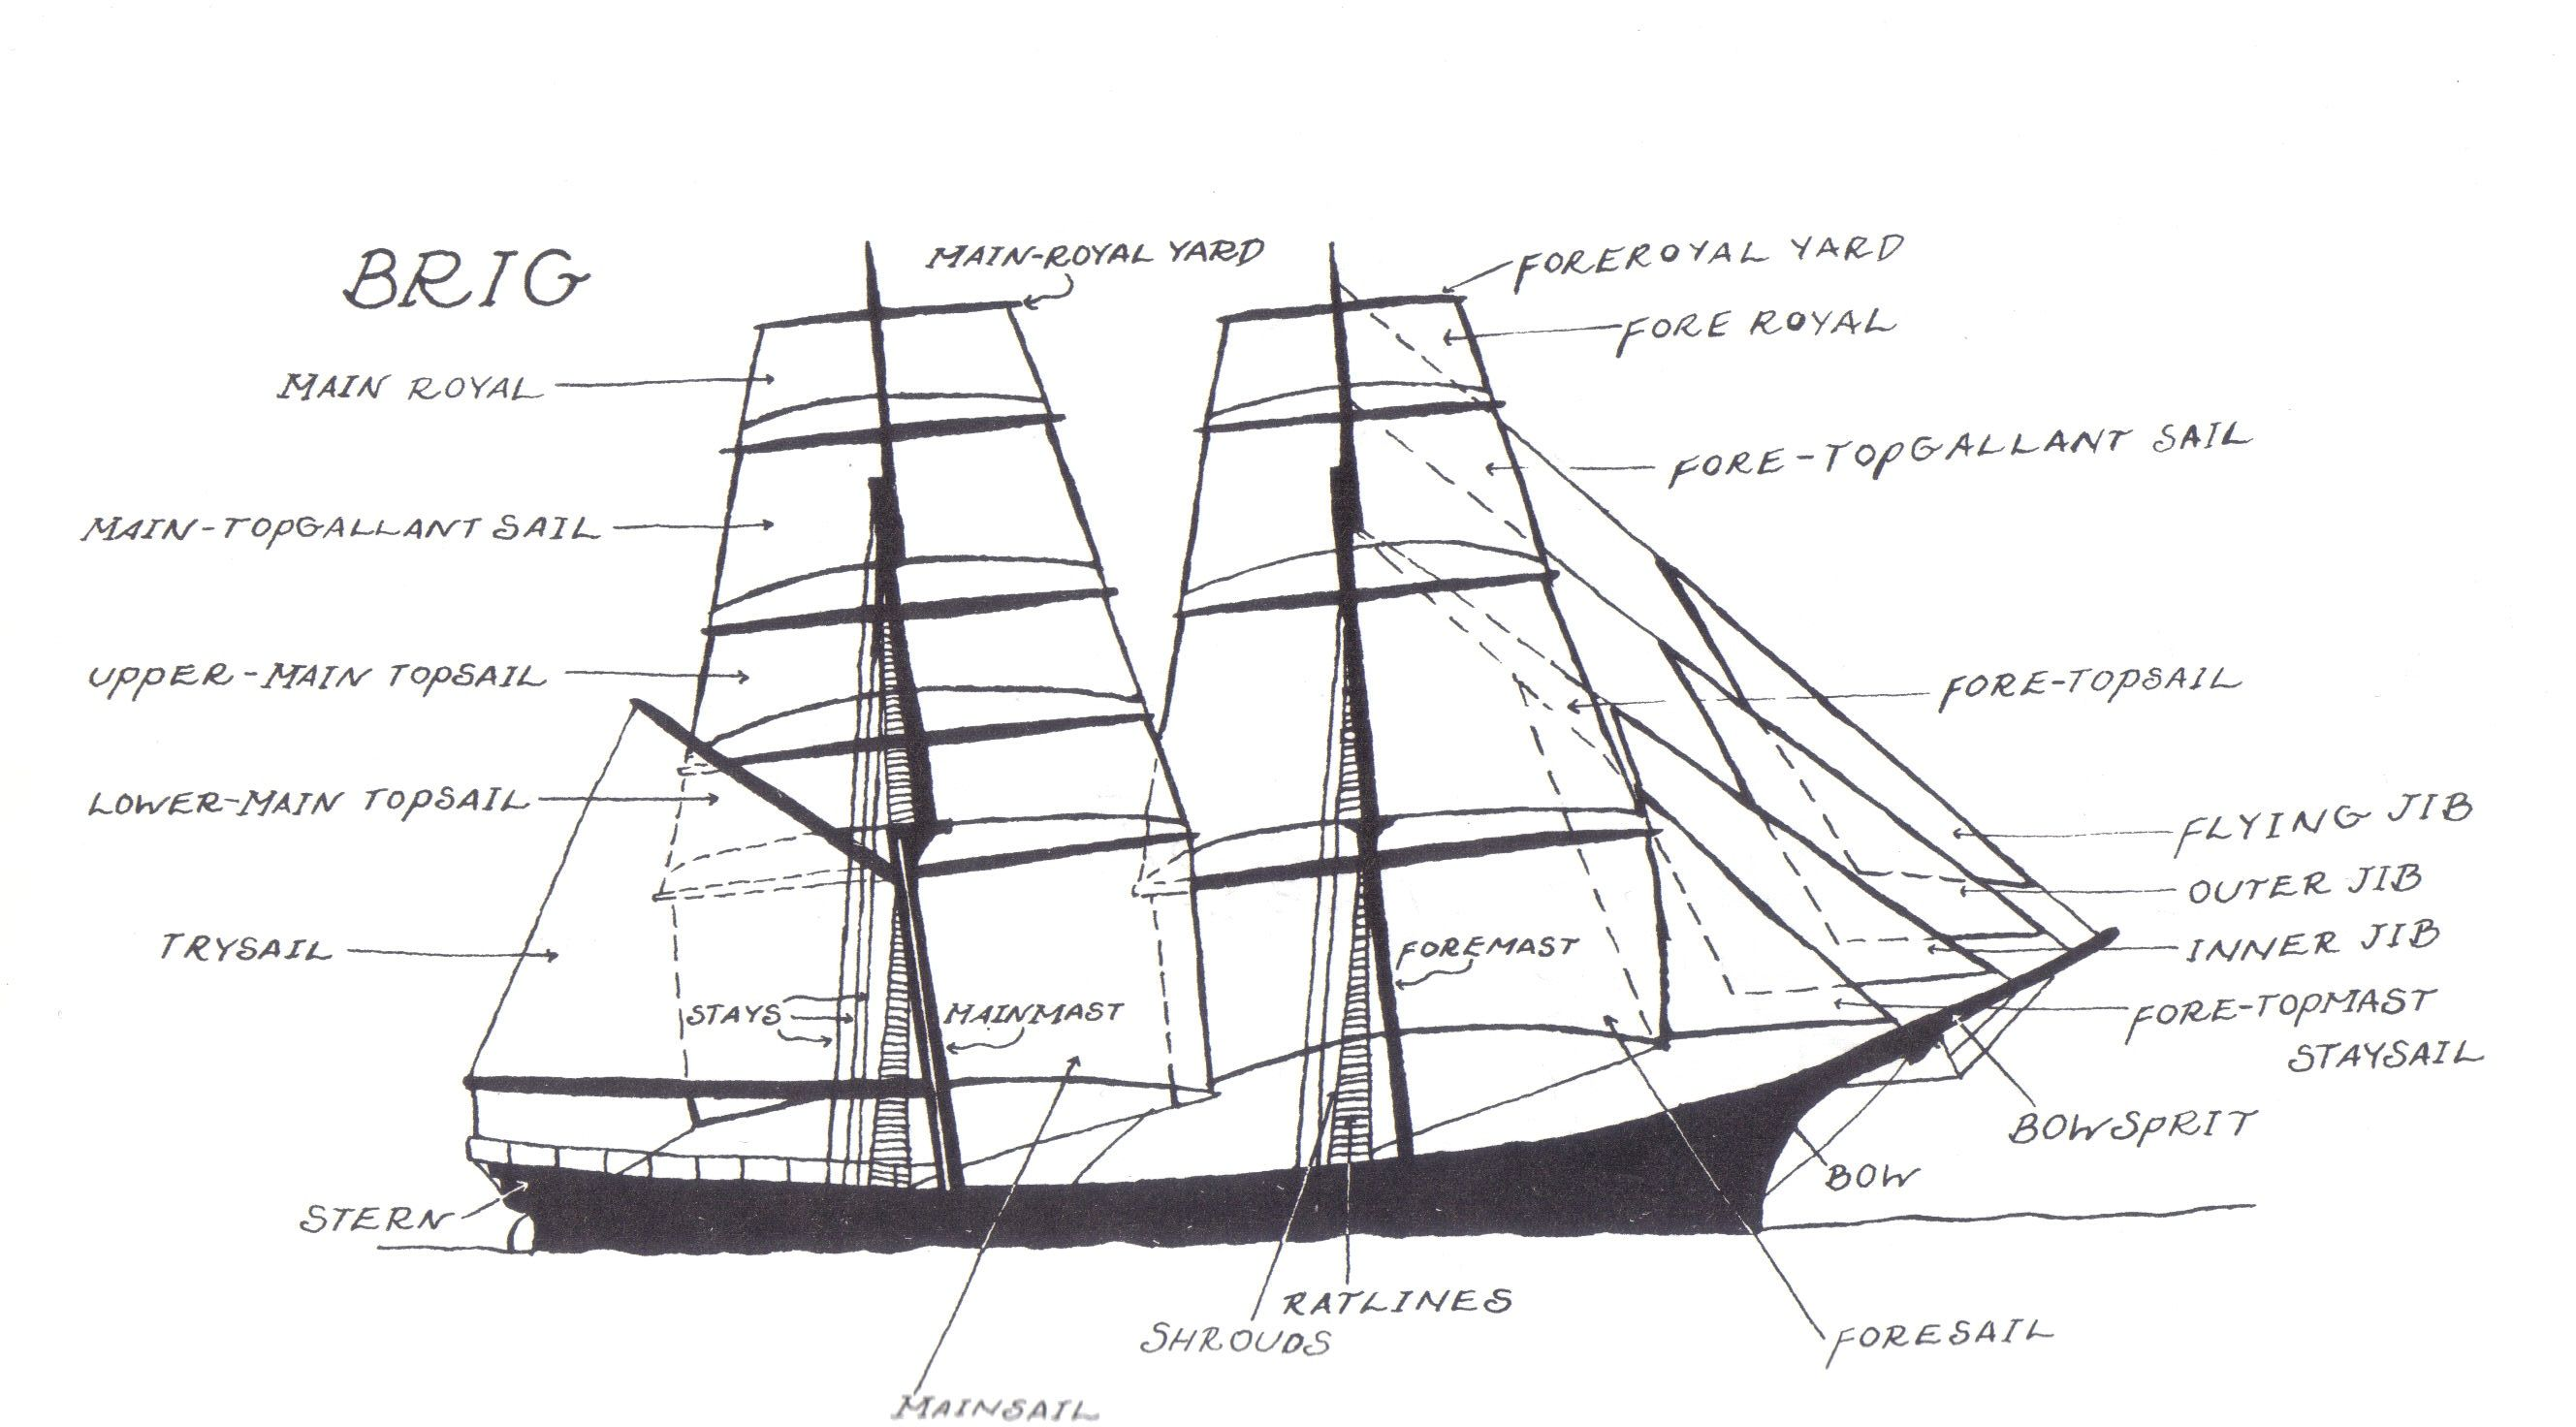 medium resolution of the true confessions of charlotte doyle ship diagram while the diagram might be helpful in identifying what the